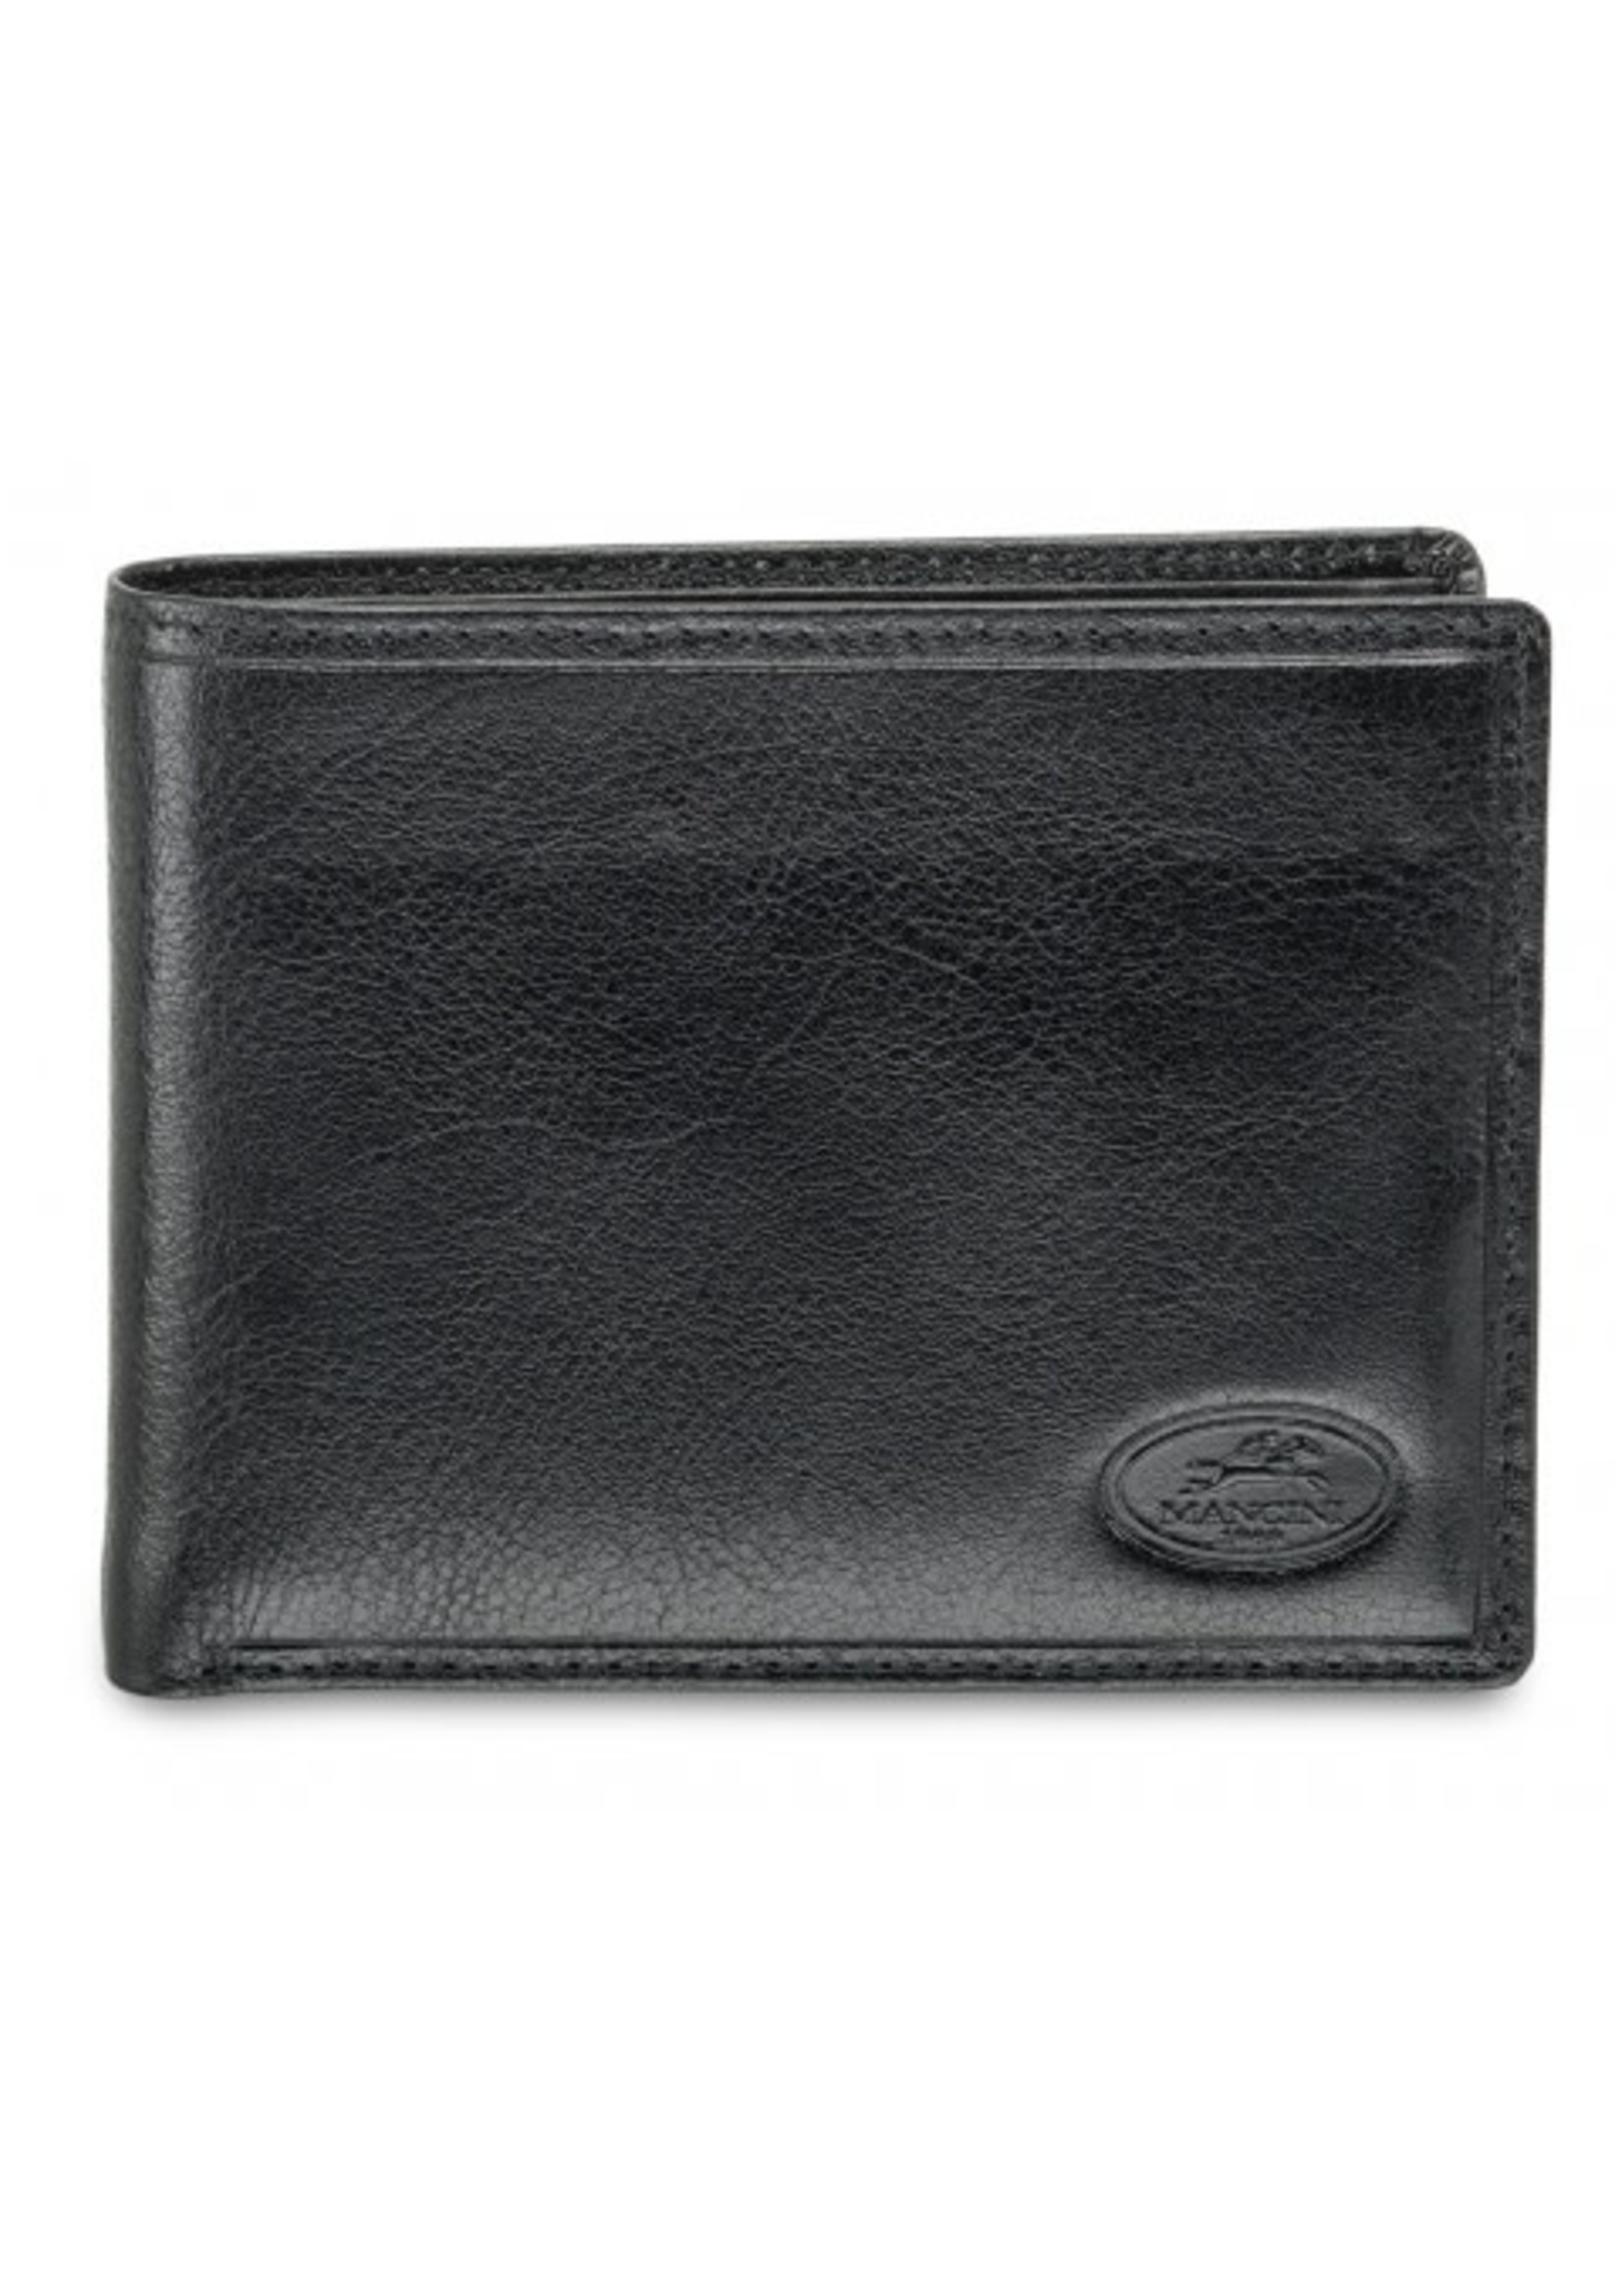 Mancini Men`s RFID Secure Wallet with Removable Passcase and Coin Pocket - Black